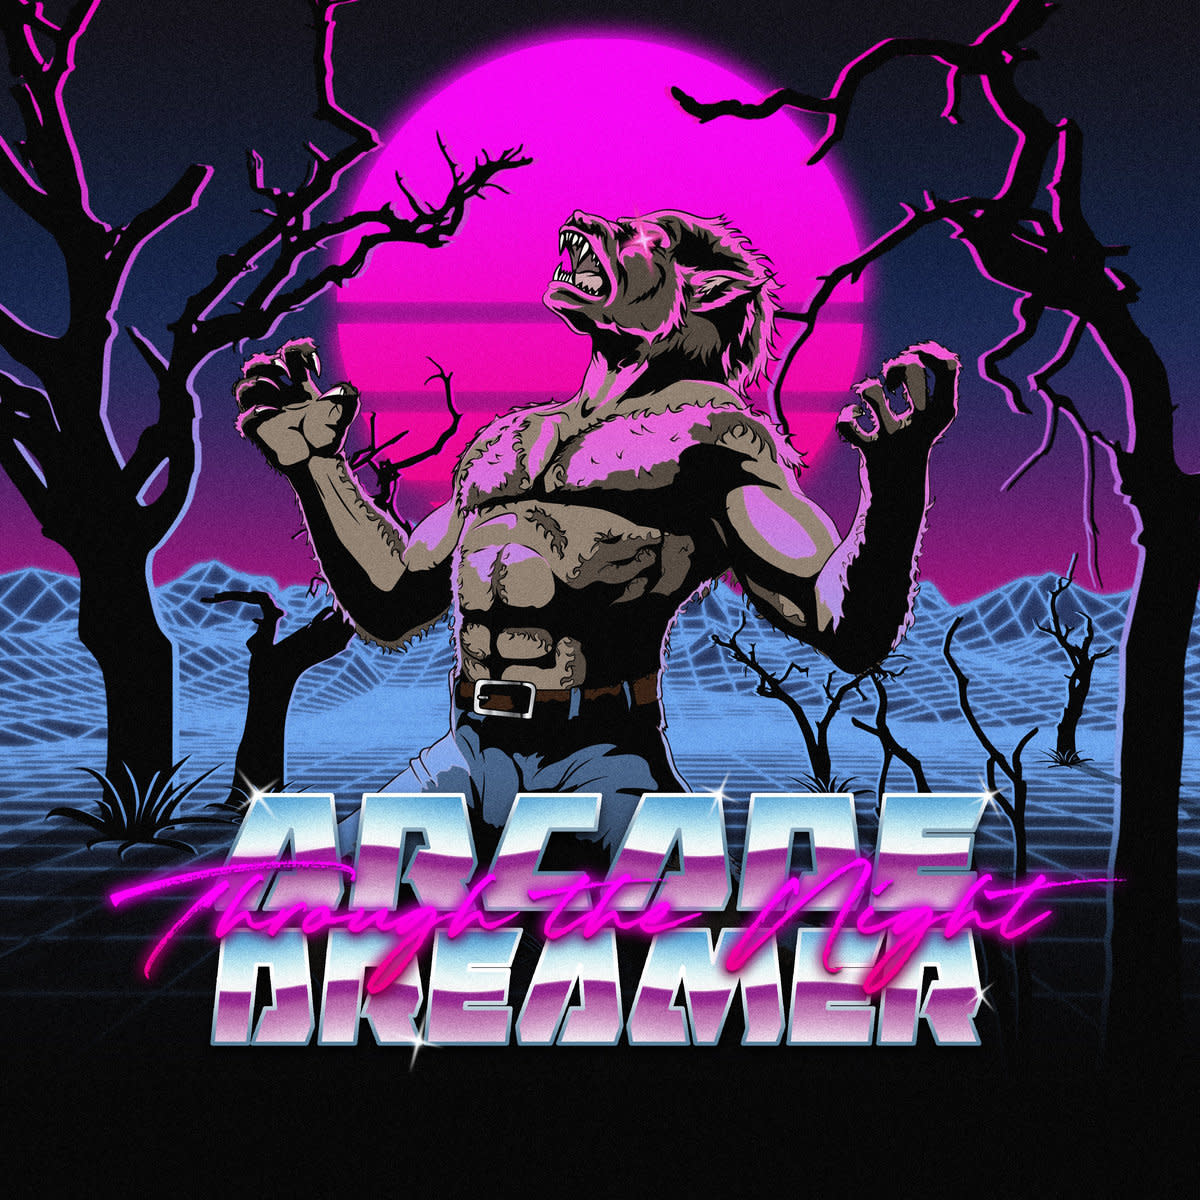 synthwave-single-review-through-the-night-by-arcade-dreamer